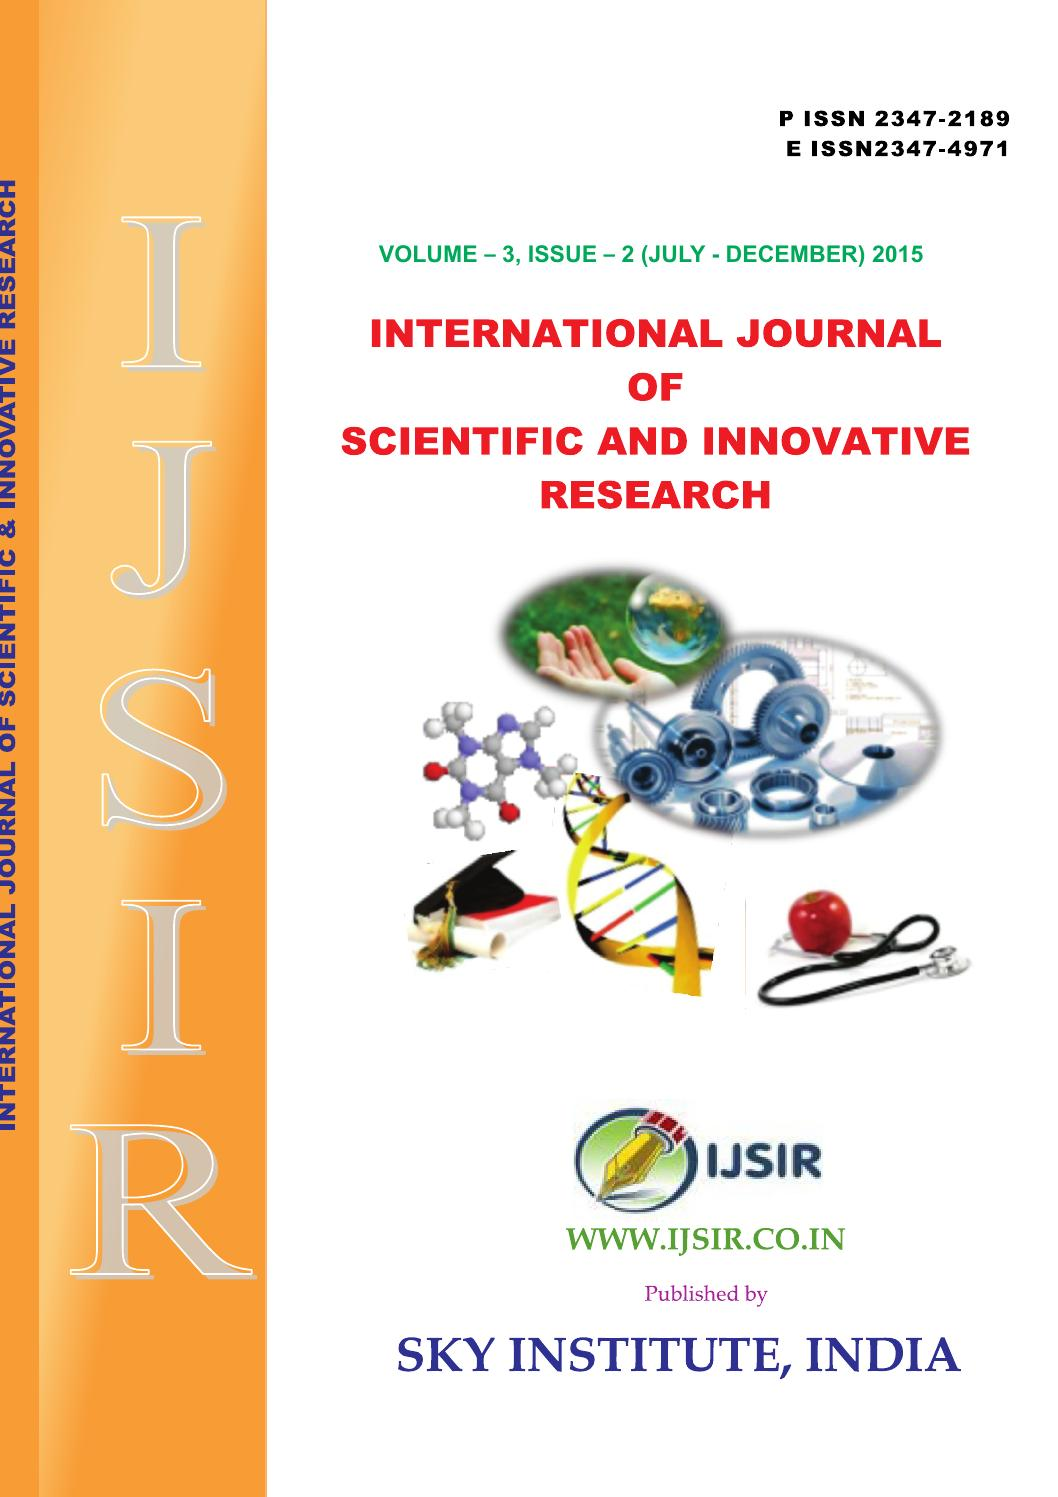 International journal of scientific and innovative research 2015 3 international journal of scientific and innovative research 2015 32p issn 2347 2189 e issn 2347 by sky insititute issuu fandeluxe Image collections